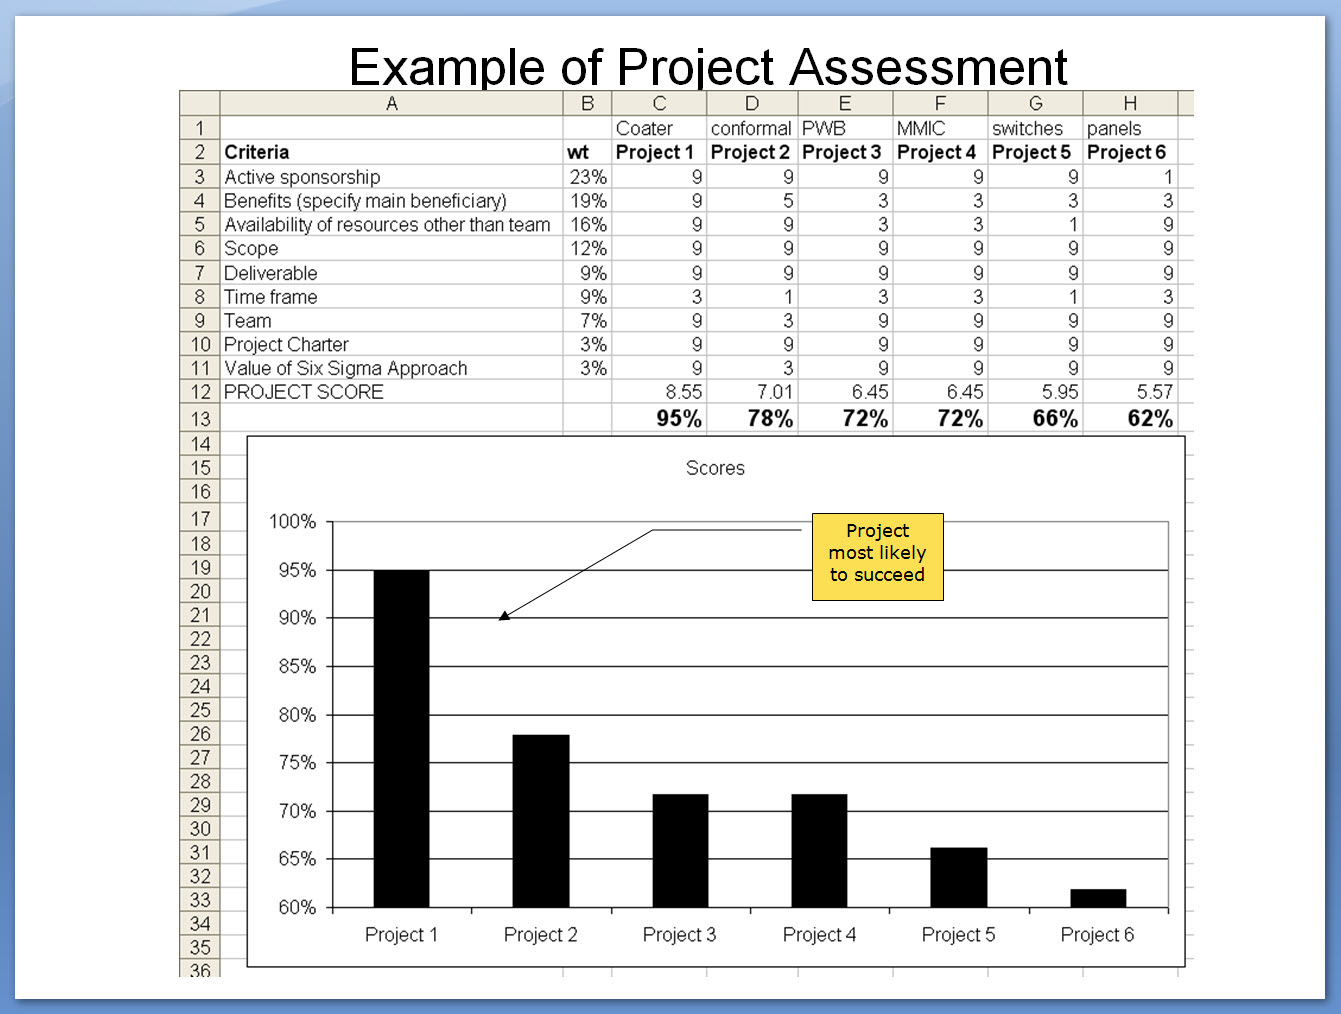 Example of Project Assessment